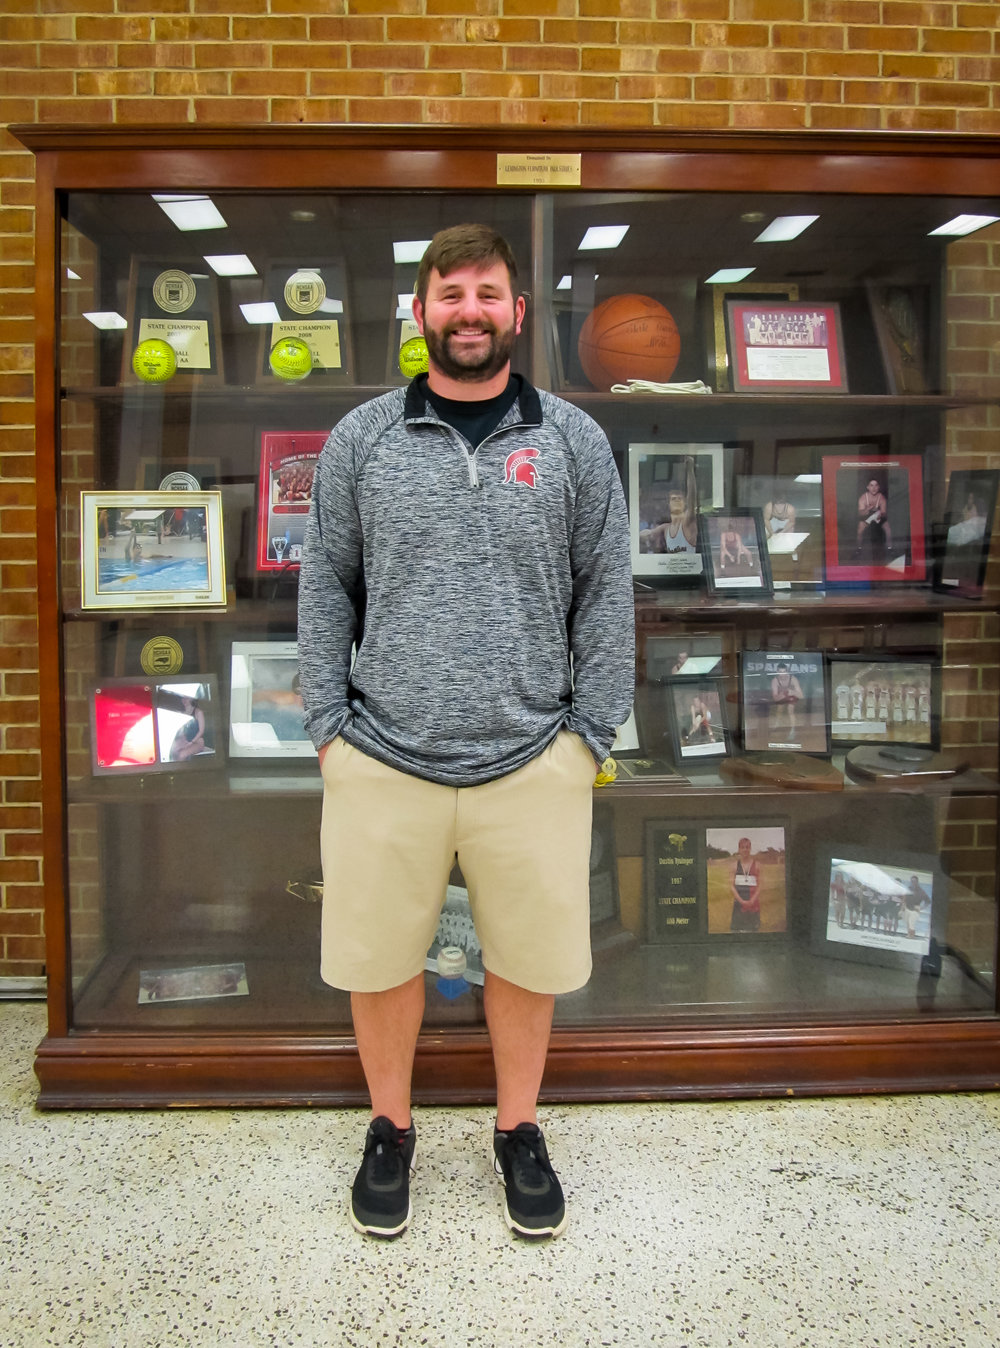 Cecil is in his first year serving as Central Davidson High School's Athletic Director.